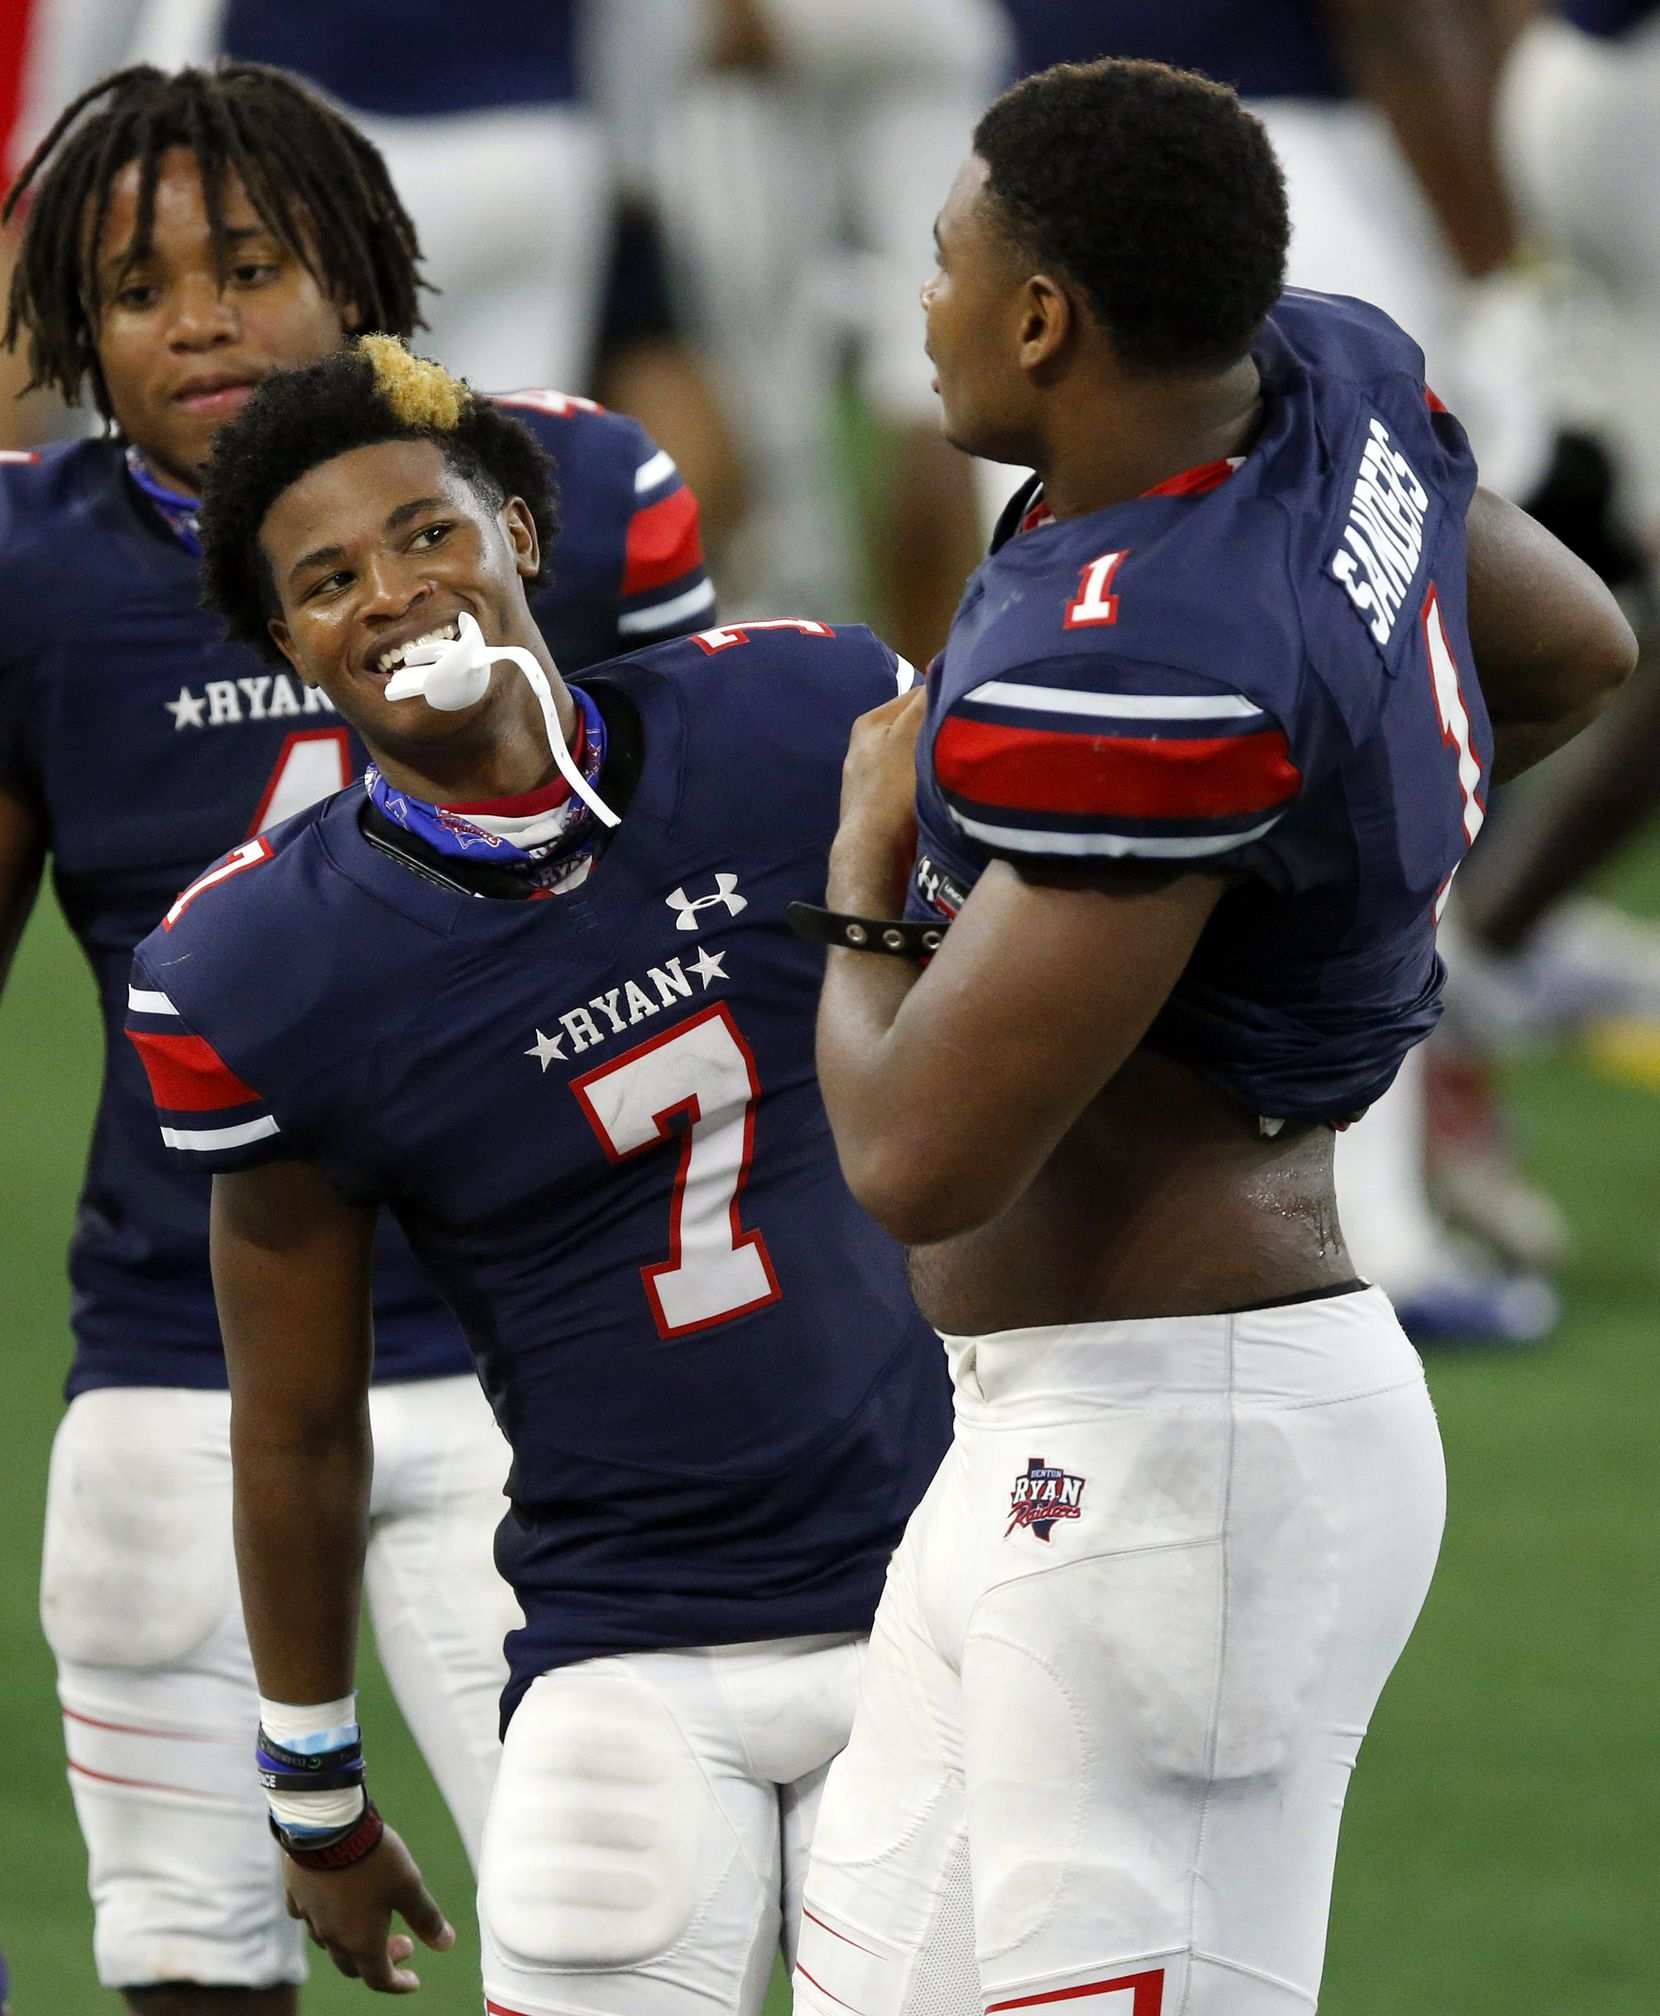 Denton Ryan cornerback Garyreon Robinson (7) jokes with receiver Ja'Tavion Sanders (1) as the two sat out the rest of the game against Arlington Martin at AT&T Stadium in Arlington, Friday, September 25, 2020. (Tom Fox/The Dallas Morning News)